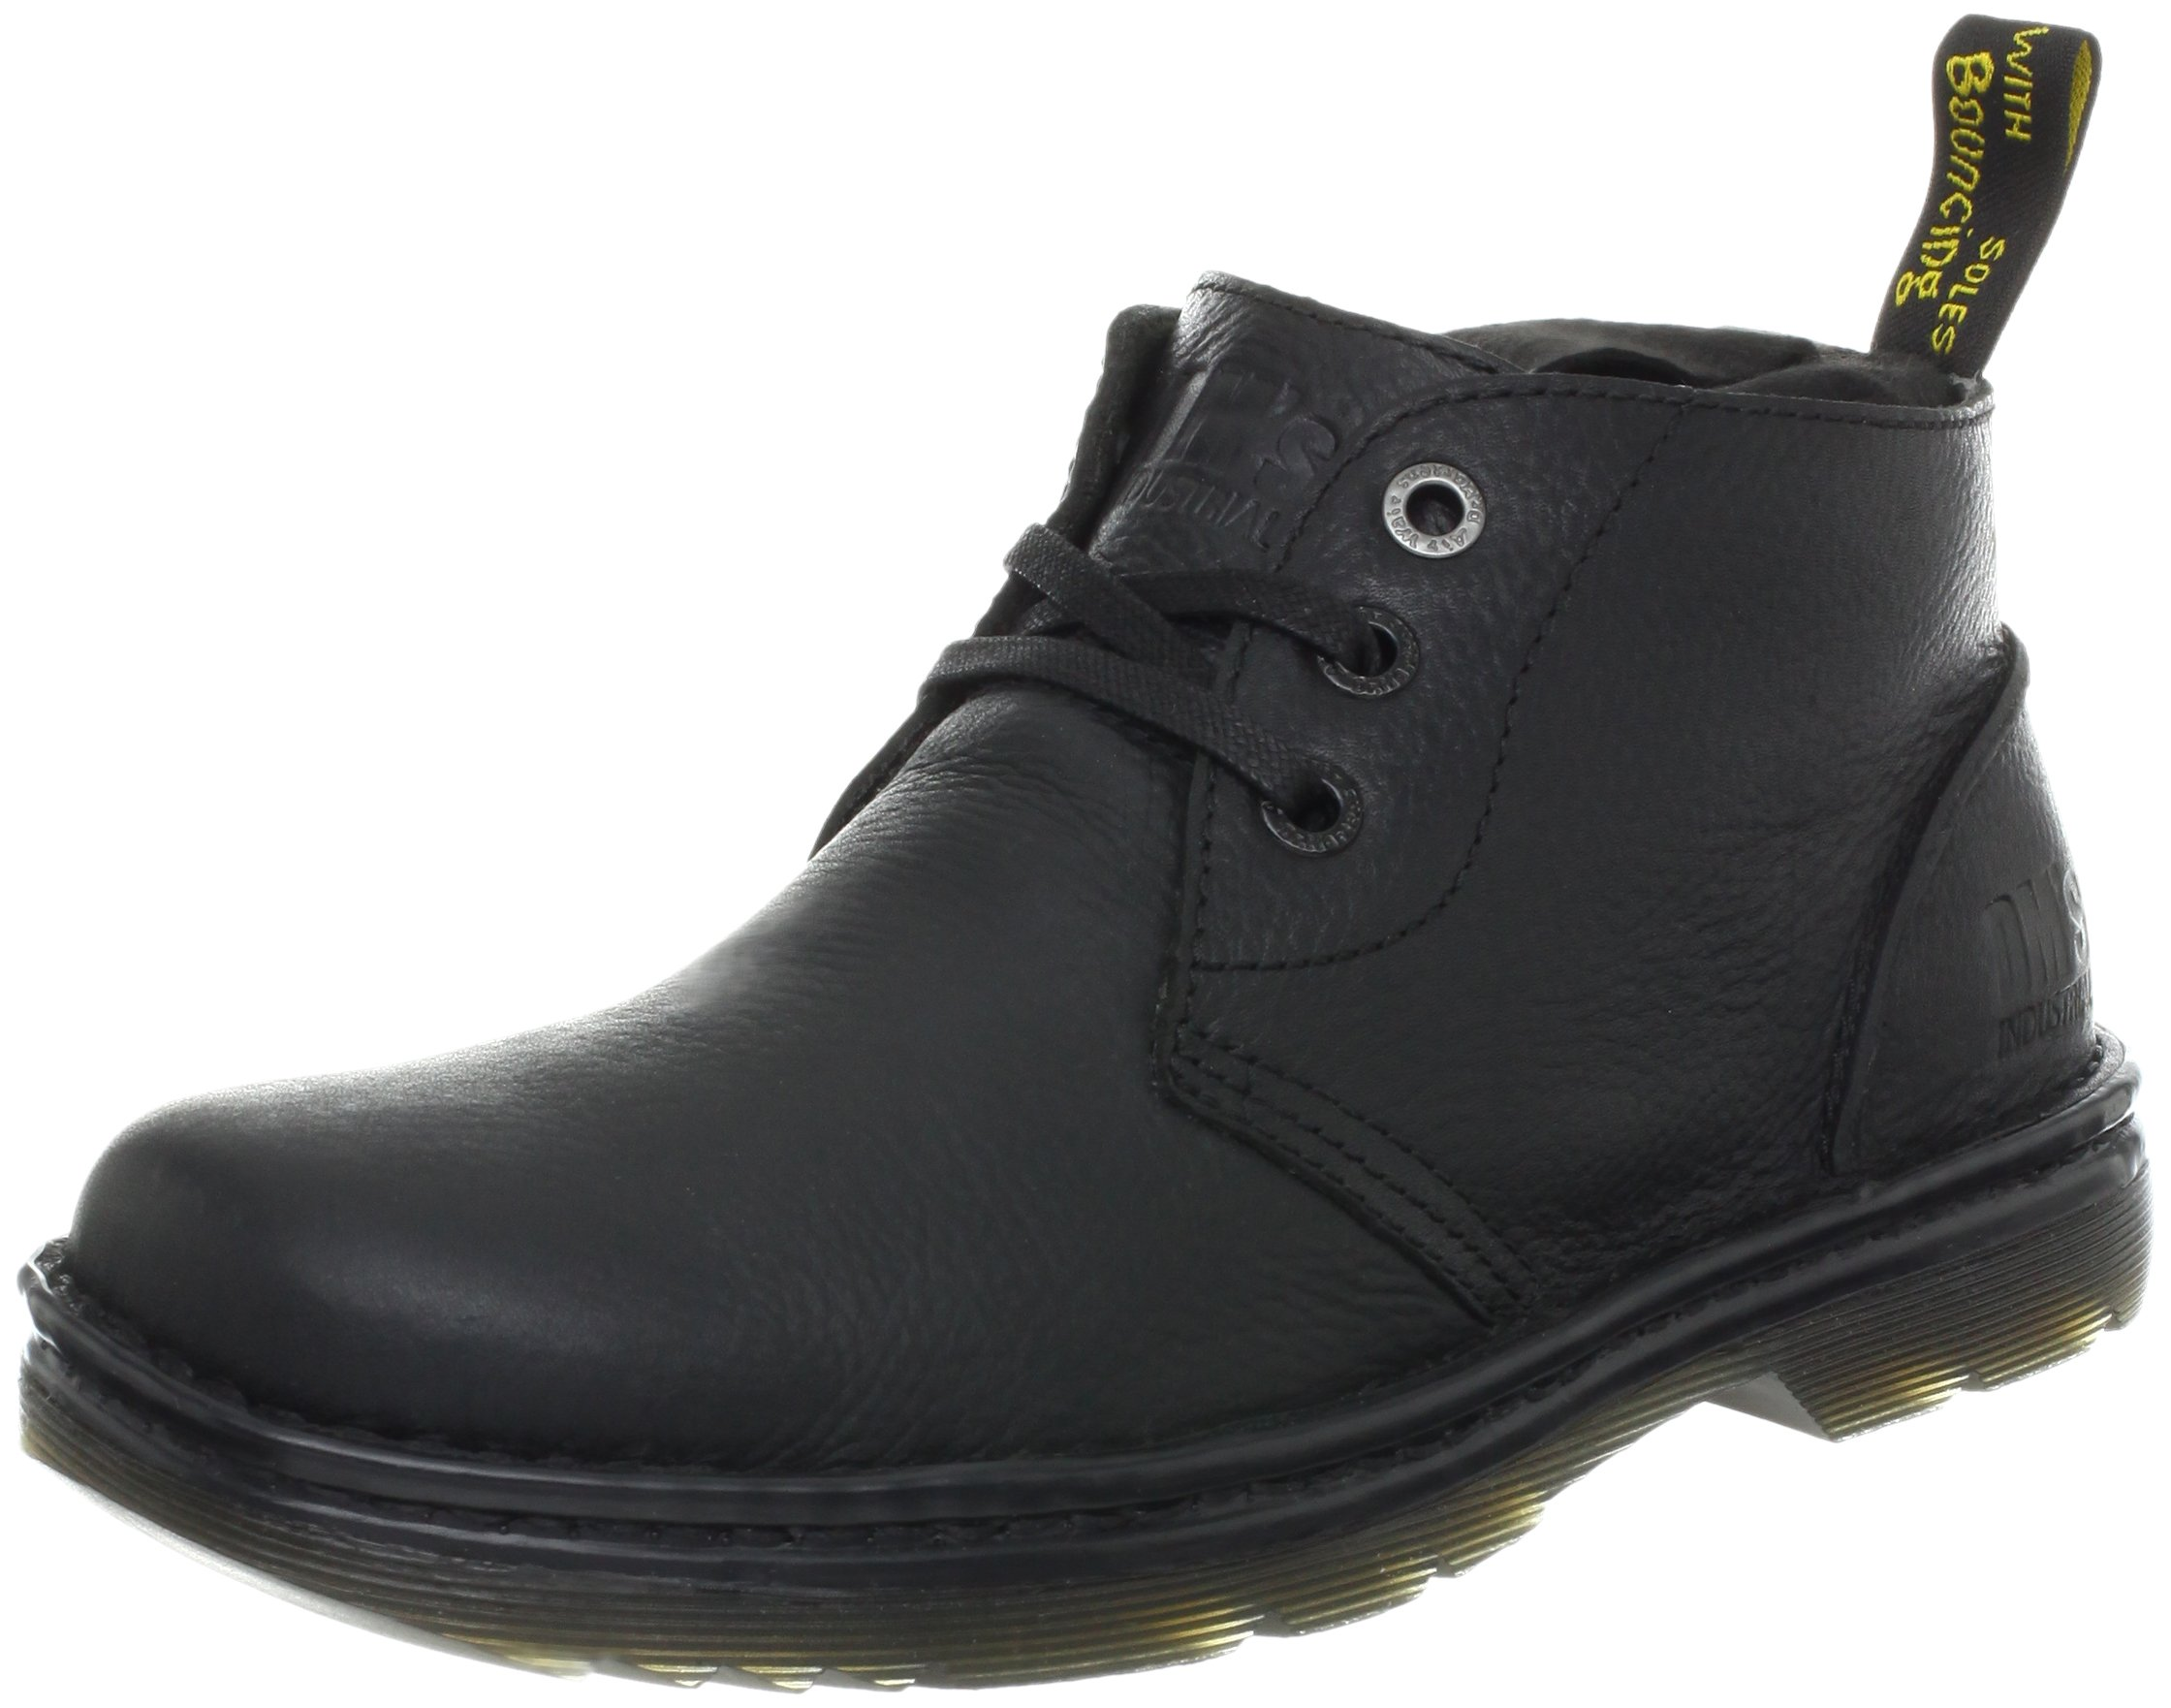 Dr. Martens Men's Sussex Work Boot,Black Bear Track,10 UK/11 M US by Dr. Martens